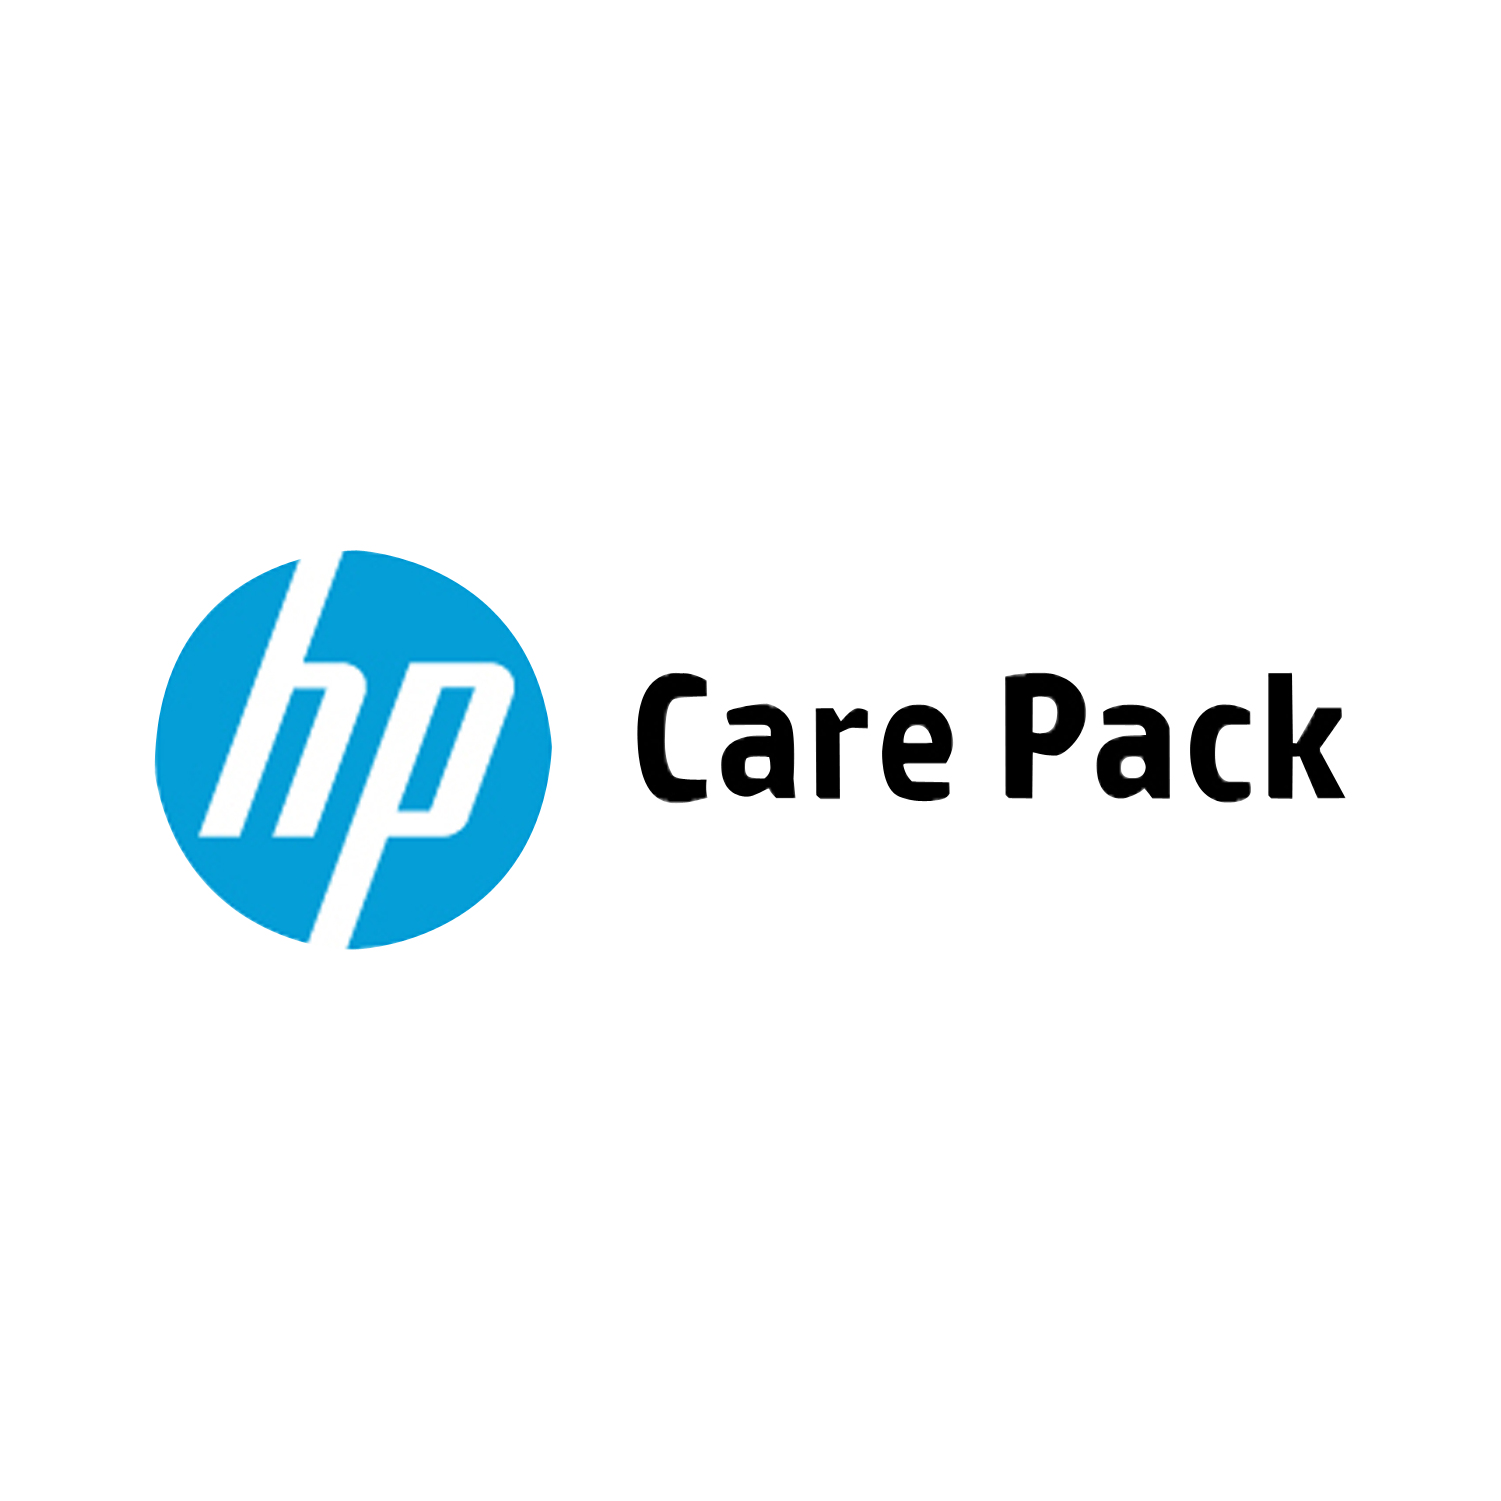 Electronic HP Care Pack Next Business Day Hardware Support - Extended Service Agreement - Parts And Labour - 4 Years - On-site - 9x5 - Response Time: NBD - For Color LaserJet Pro M452dn, M452 - C2000